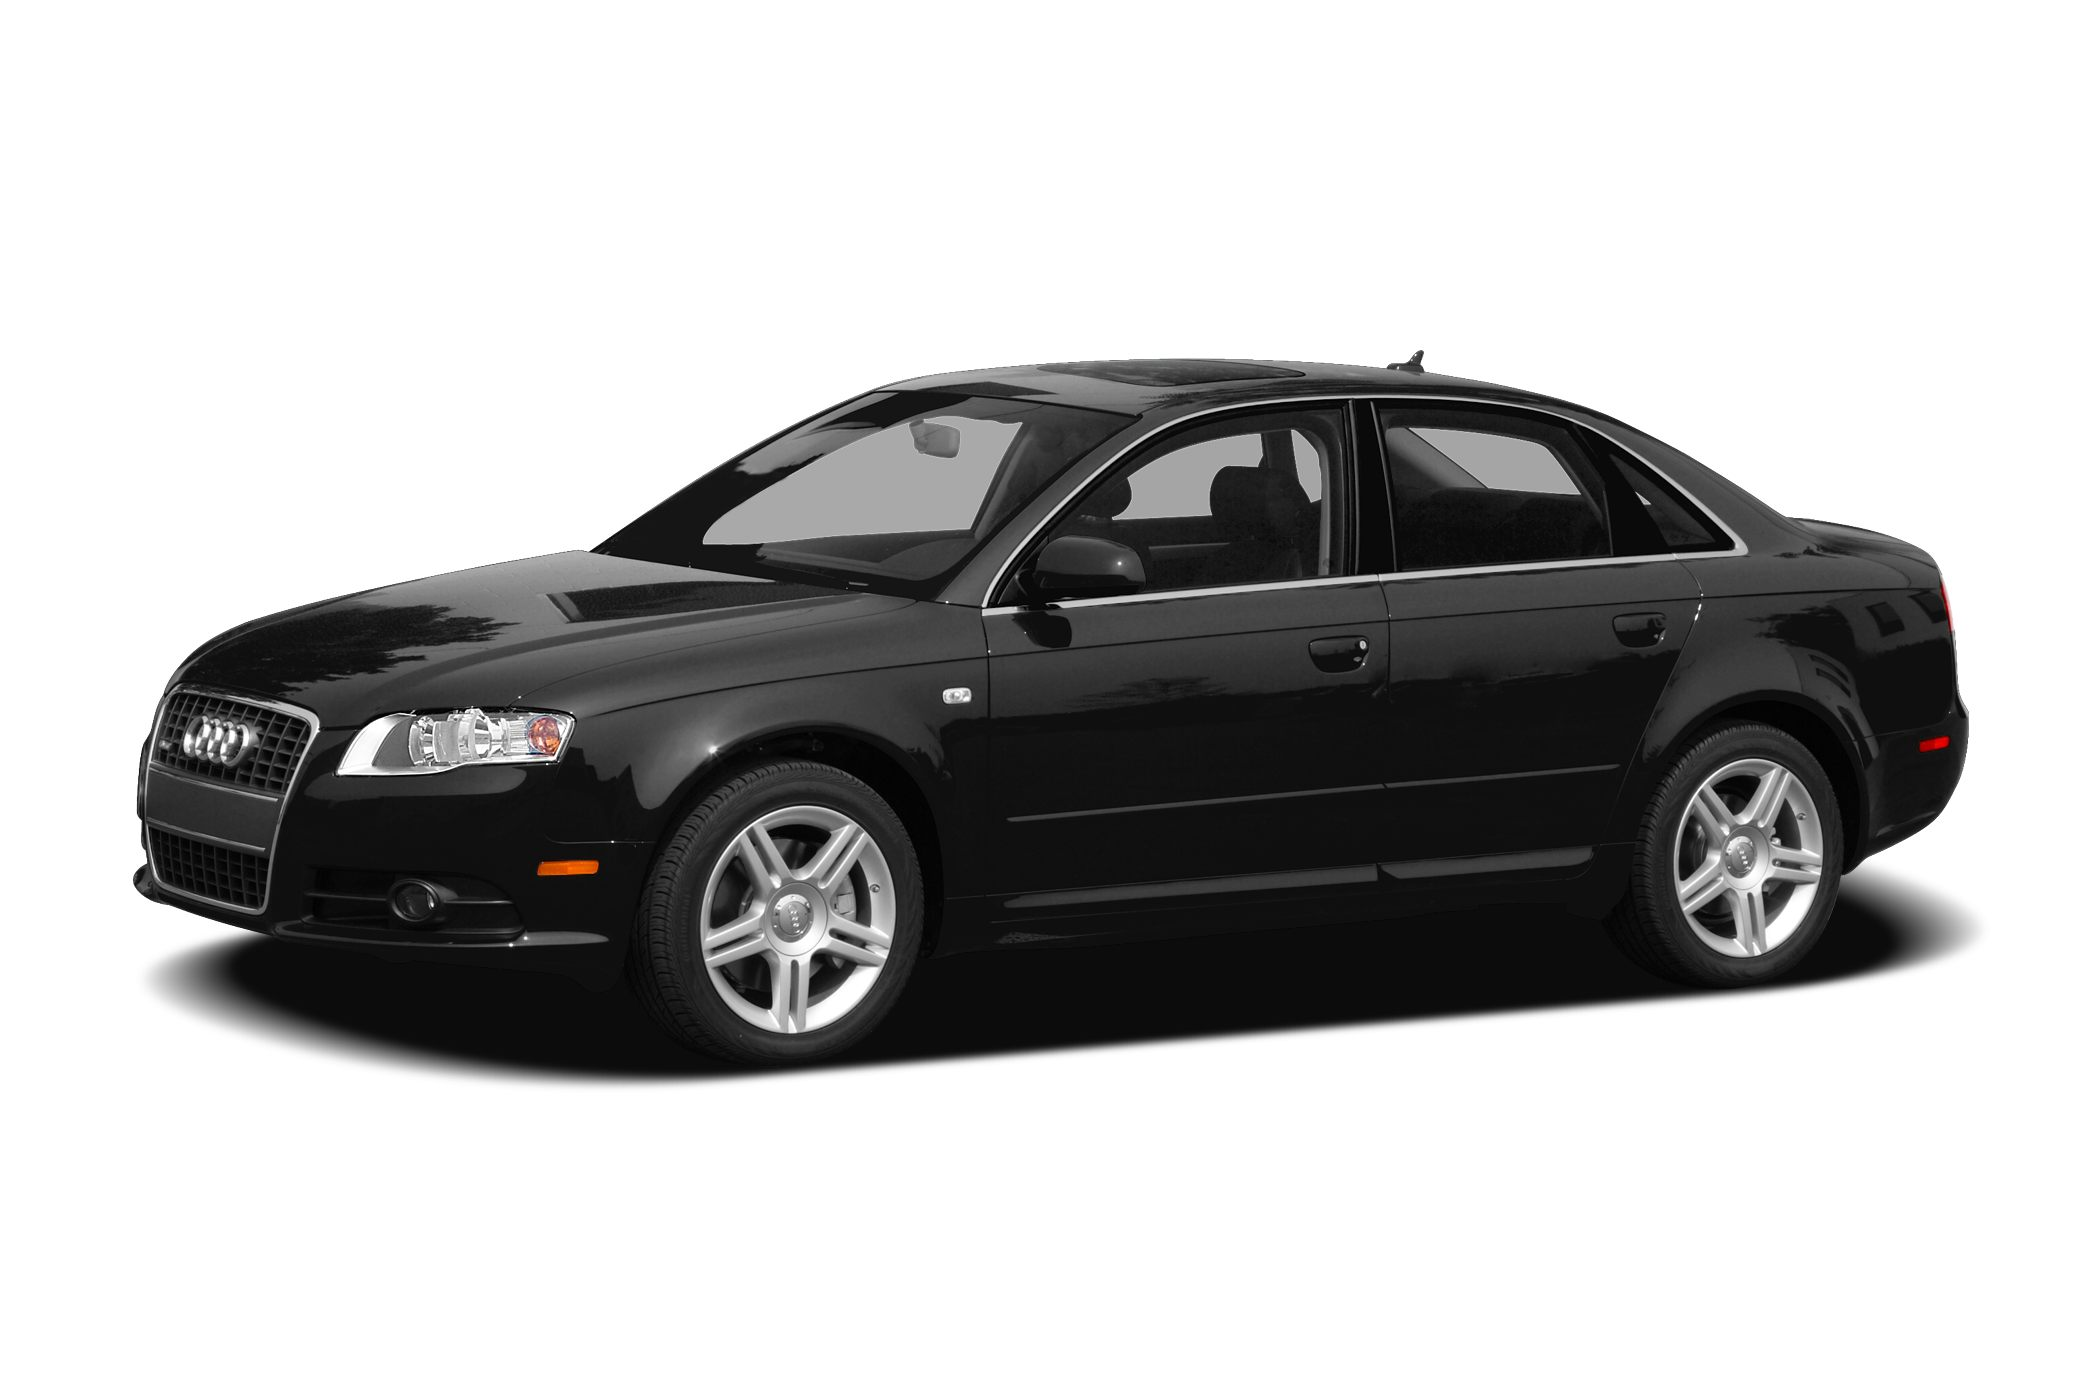 2008 Audi A4 32 quattro Color Black Stock JC547A VIN WAUDH78E78A074148